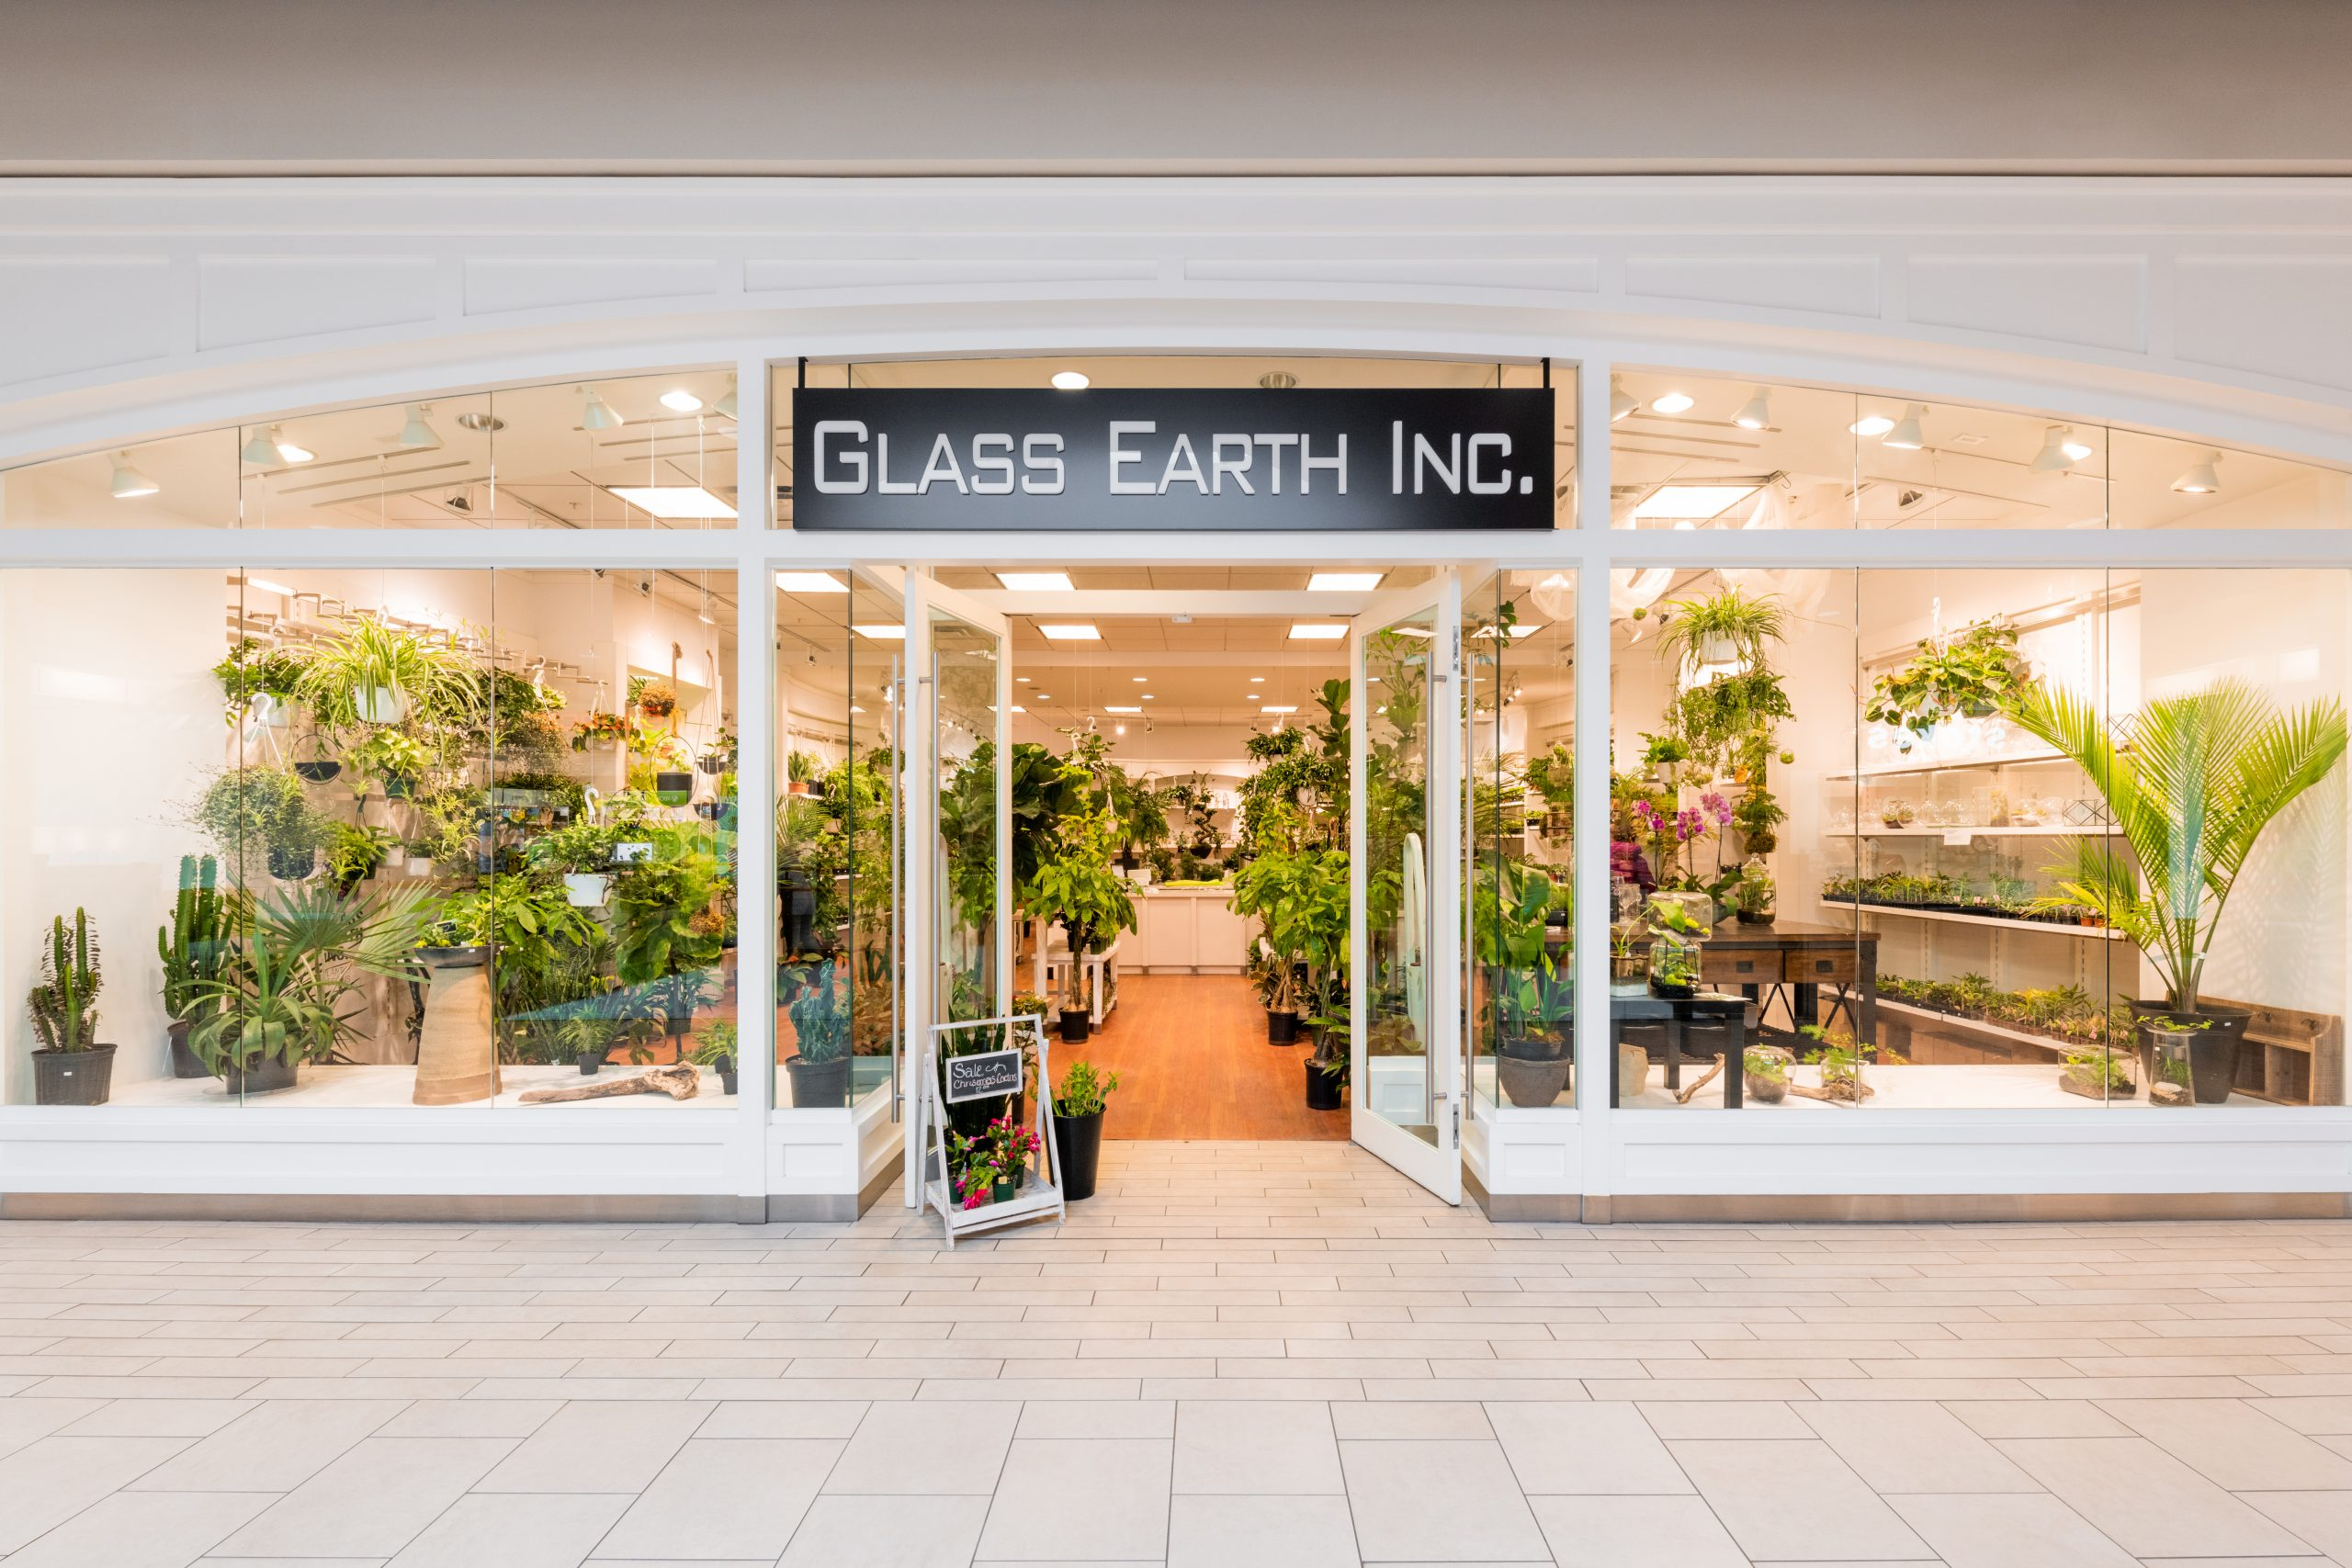 Outside view of Glass Earth Inc.